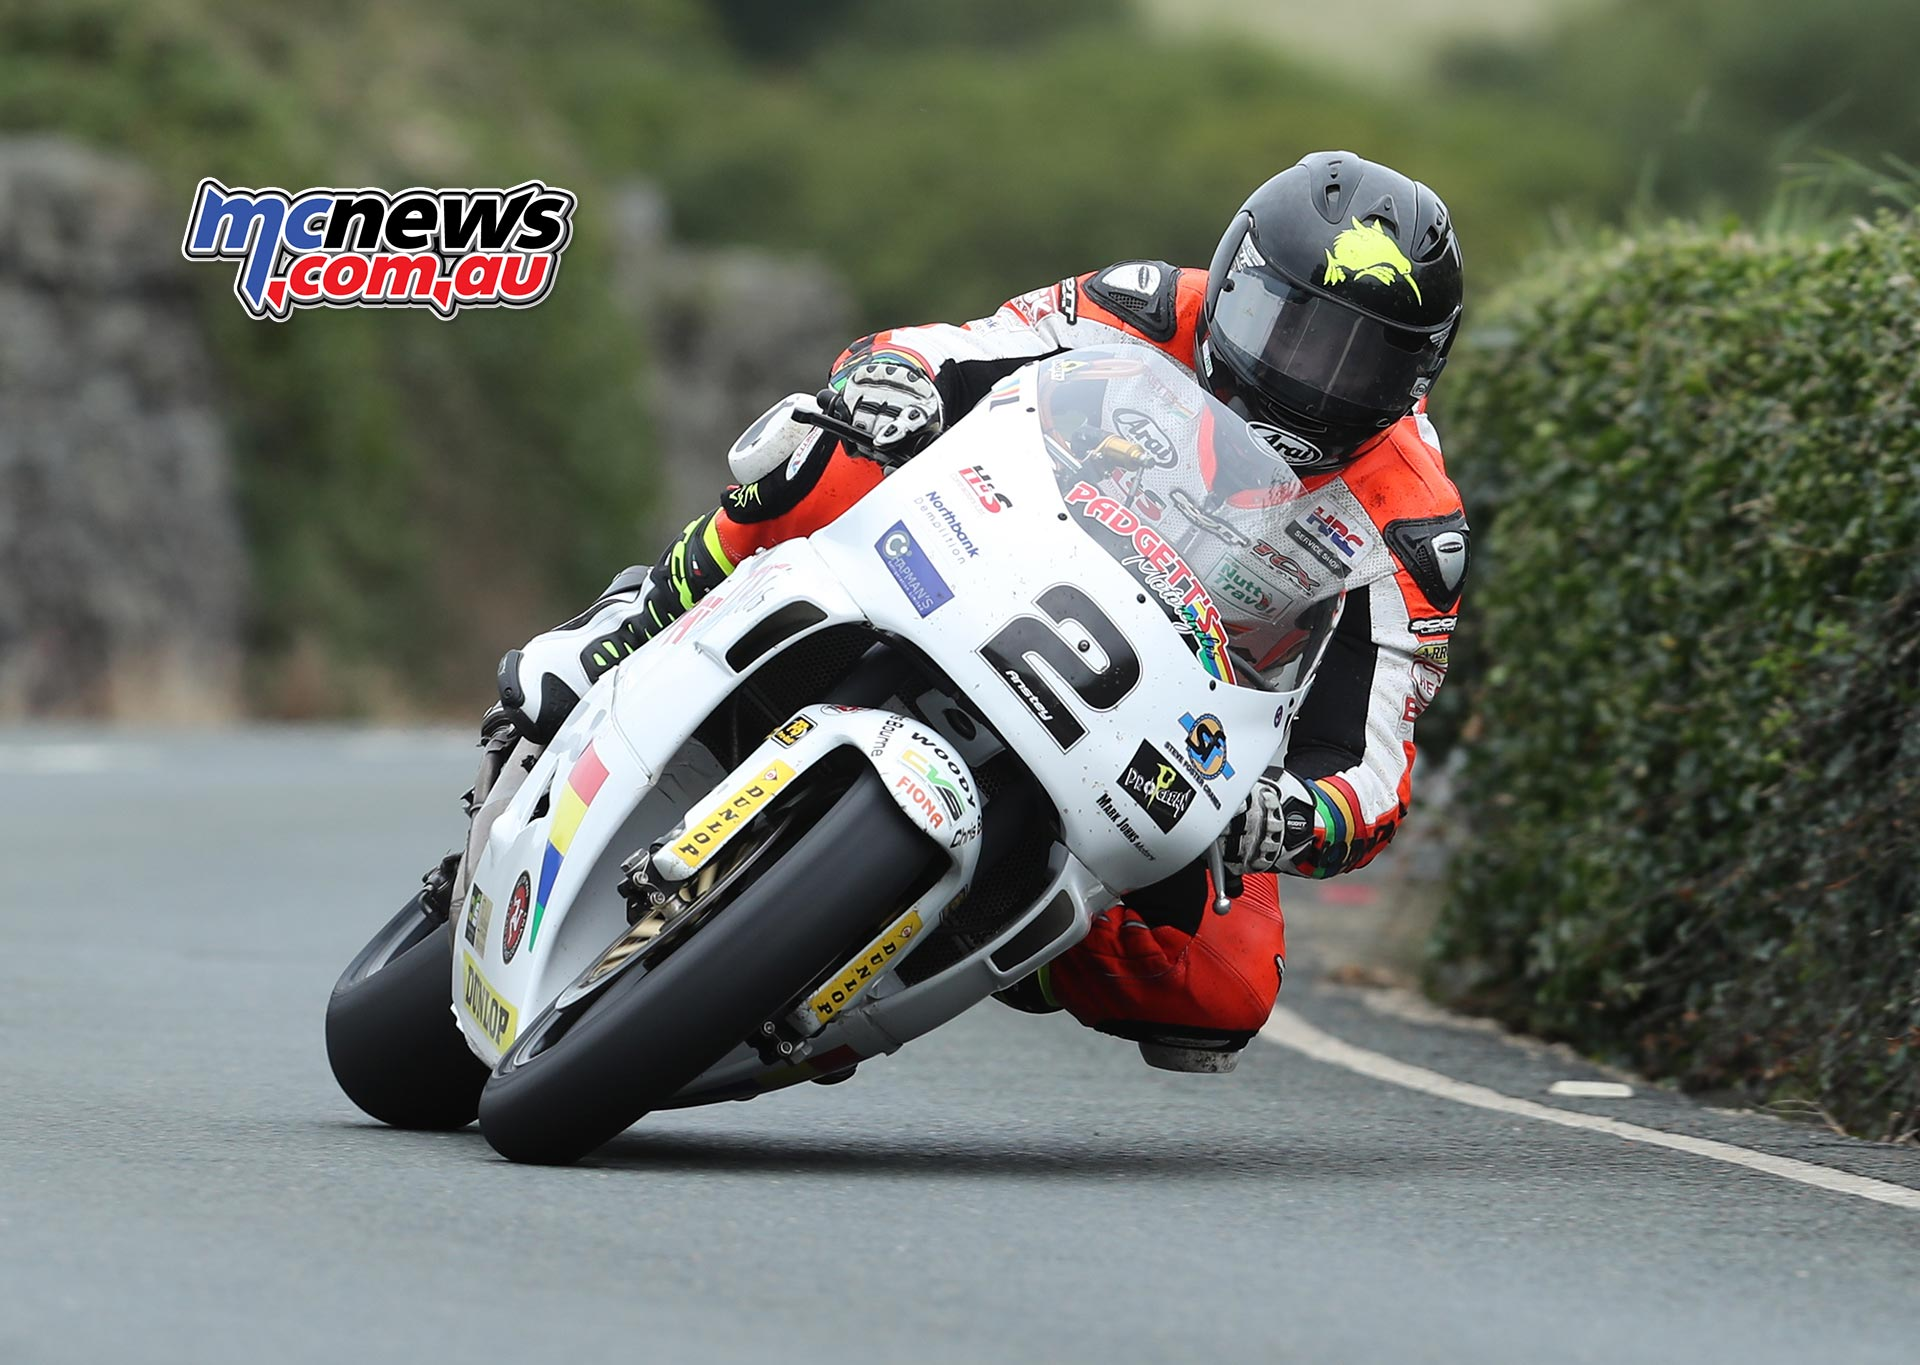 Bruce Anstey (500 Yamaha/Padgetts Motorcycles.com) approaching the Gooseneck during the Tuesday's Motorsport Merchandise Superbike Classic TT race. PICTURE BY DAVE KNEEN